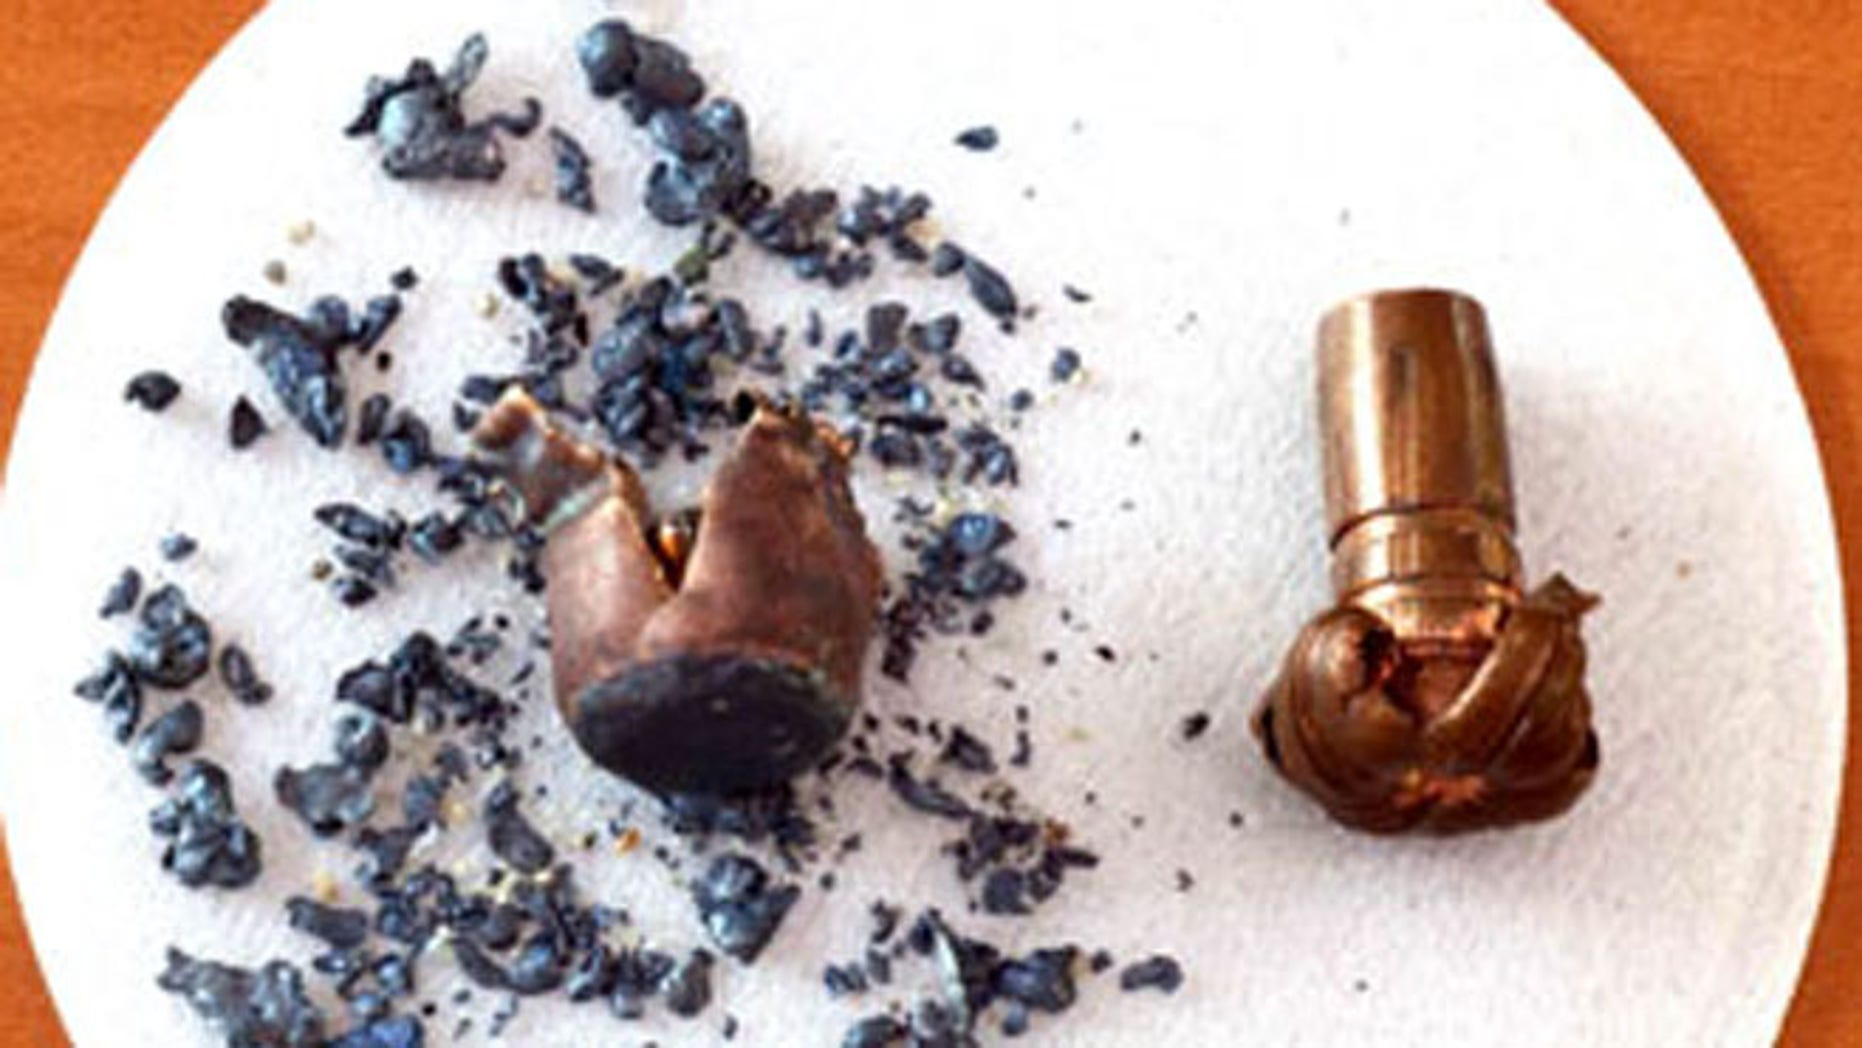 File: Two .270 caliber bullets discharged and retrieved. The non-lead bullet is on the right. The lead bullet is on the left.